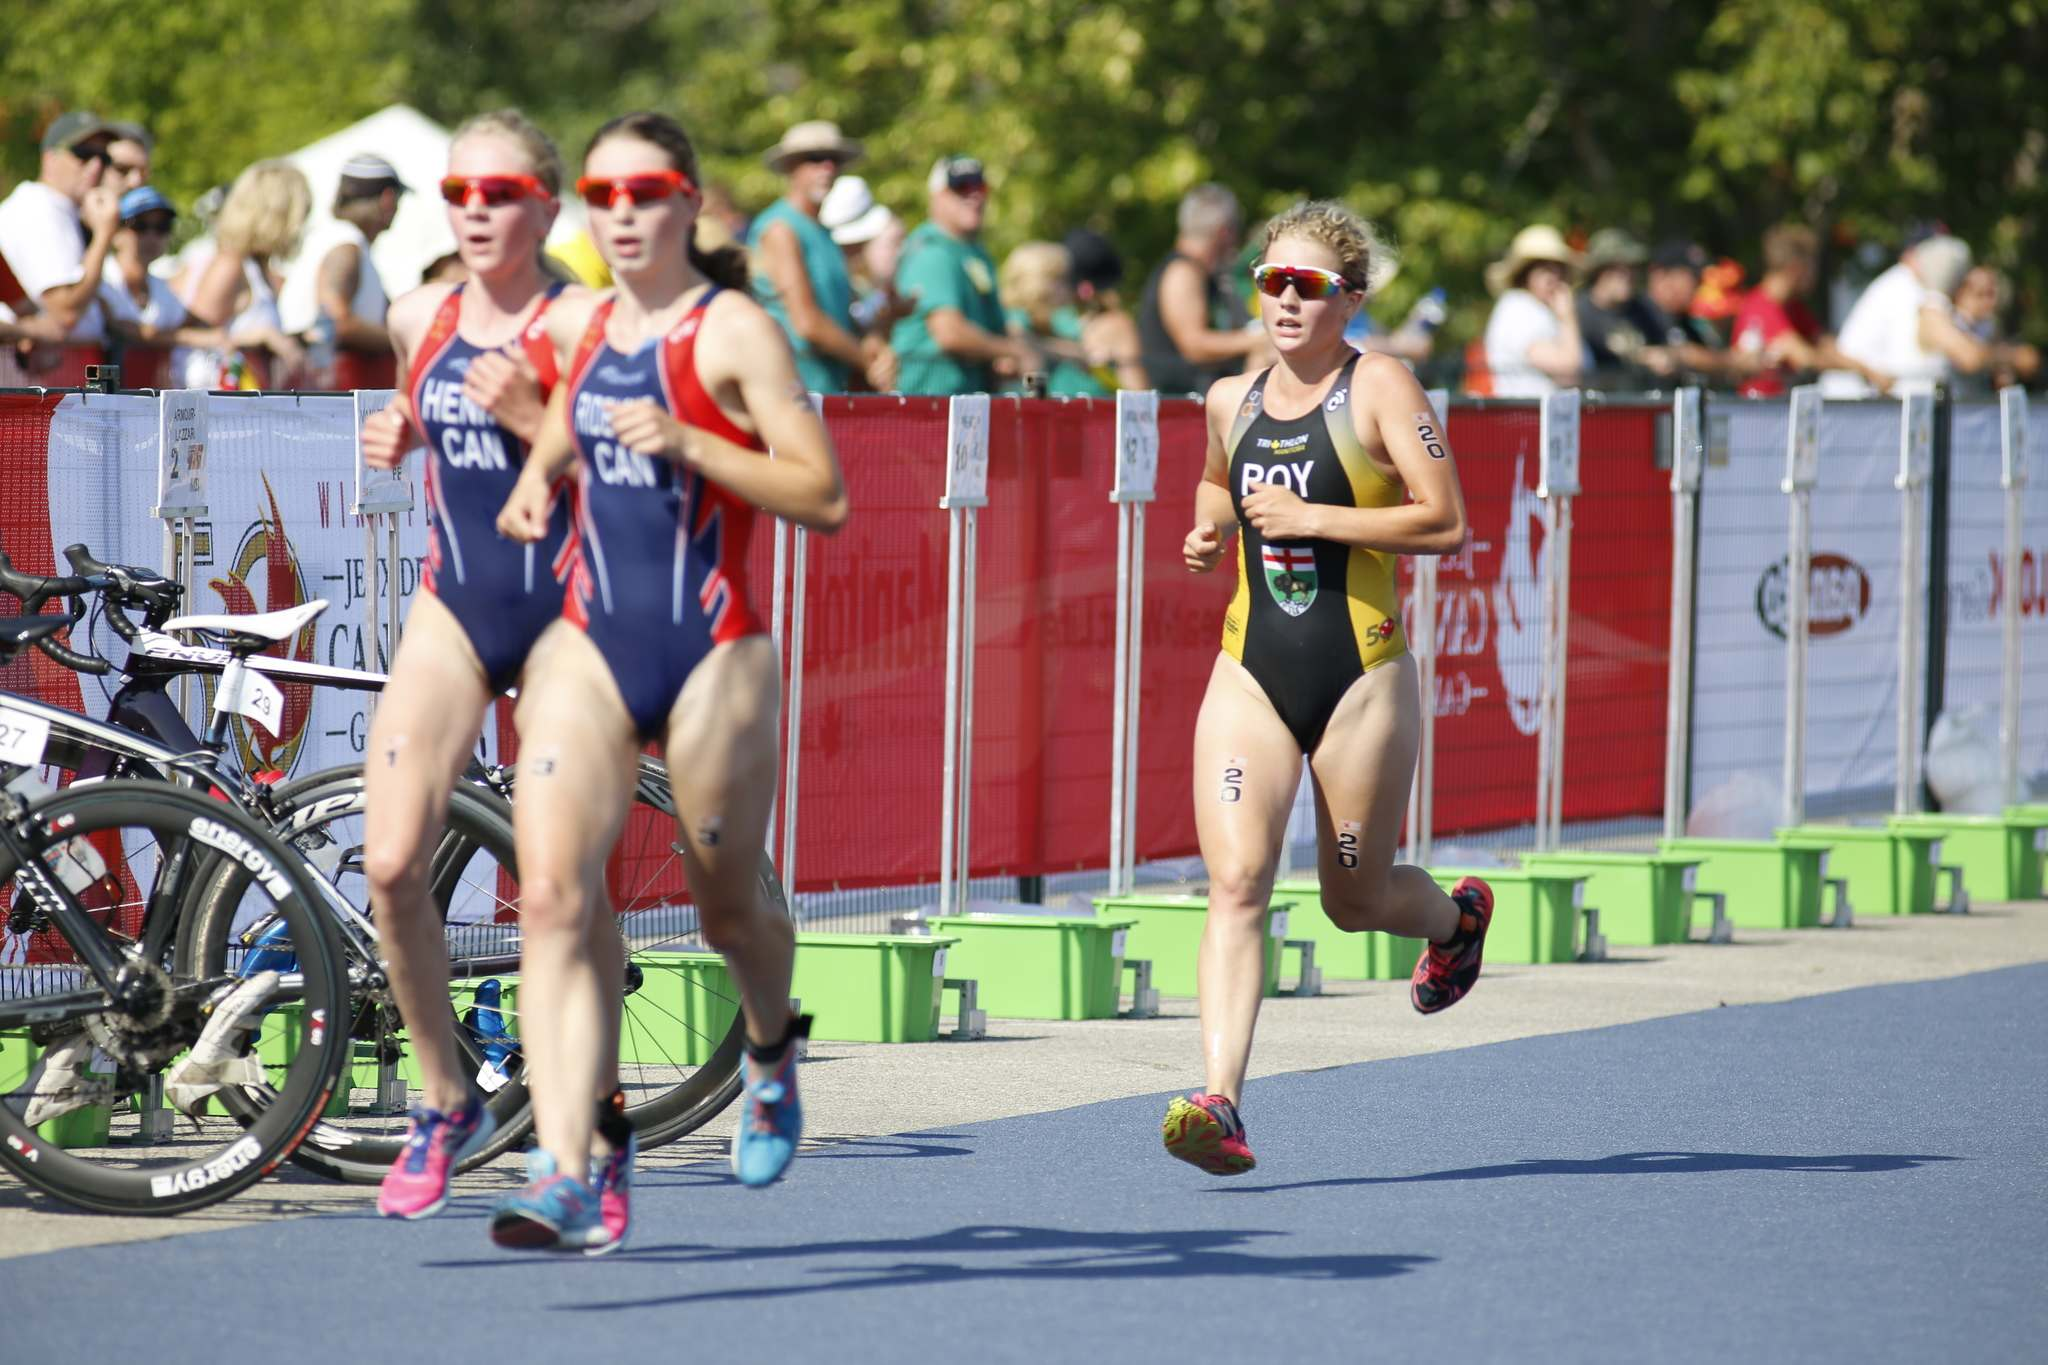 Desirae Ridenour wins BC's first gold at Canada Summer Games